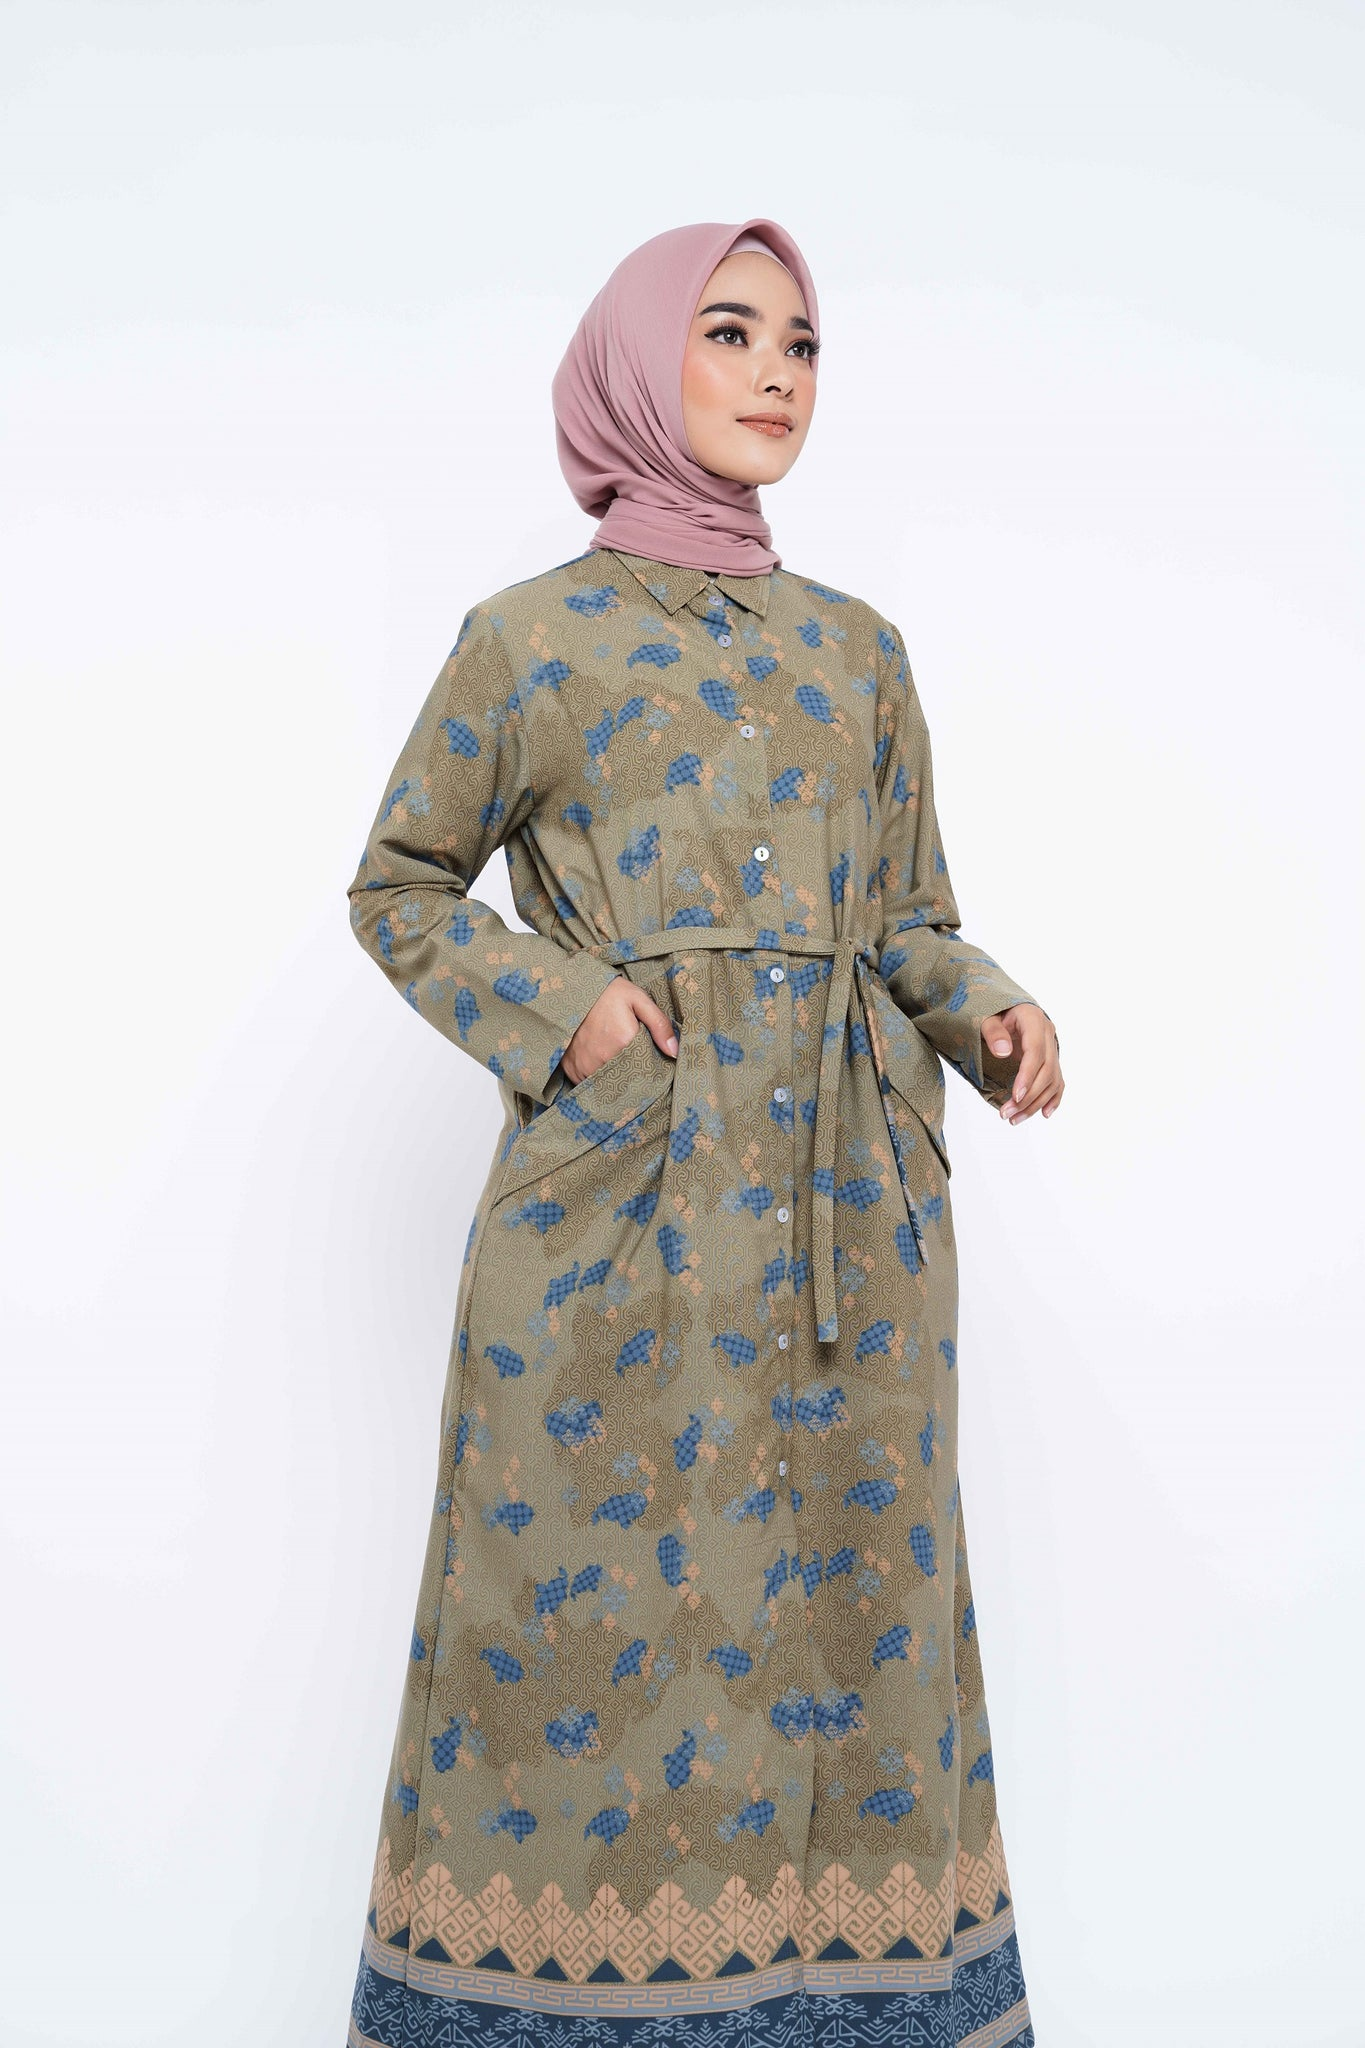 ZM- Halia Olive Dress - Jelita Indonesia - Edisi Makassar